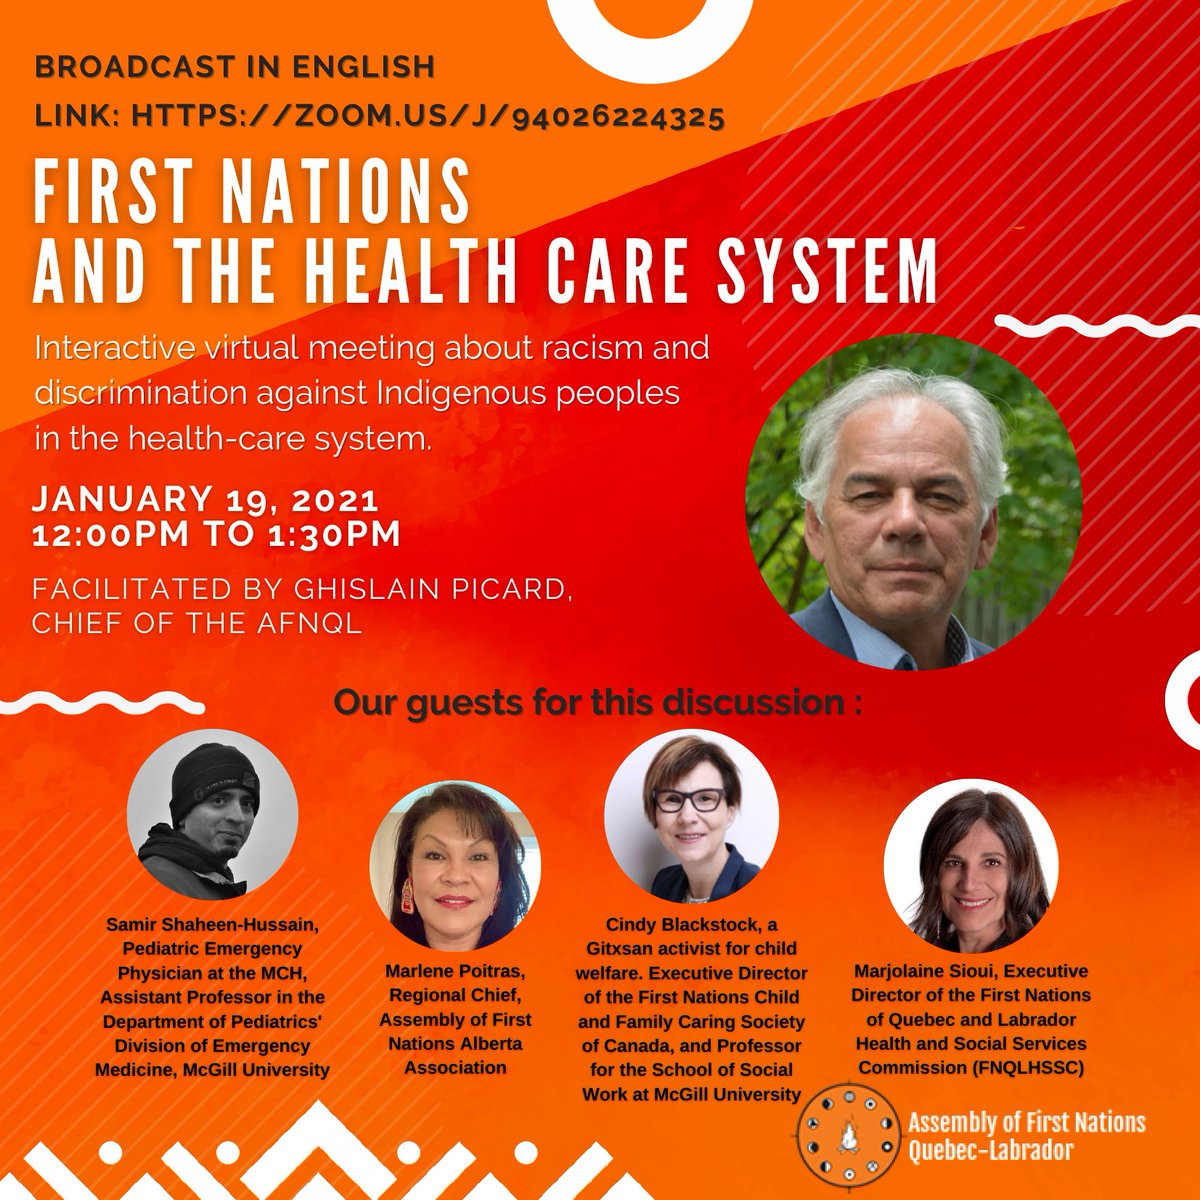 Humbled to be on this #SystemicRacism & #Discrimination in #HealthCare roundtable. With @cblackst @marlenelpoitras @SiouiMarjolaine, moderated by @picardghislain #AFNQL This Tuesday January 19th @ noon (EST)! #Fighting4aHand2Hold #JusticeForJoyce facebook.com/events/7770787…